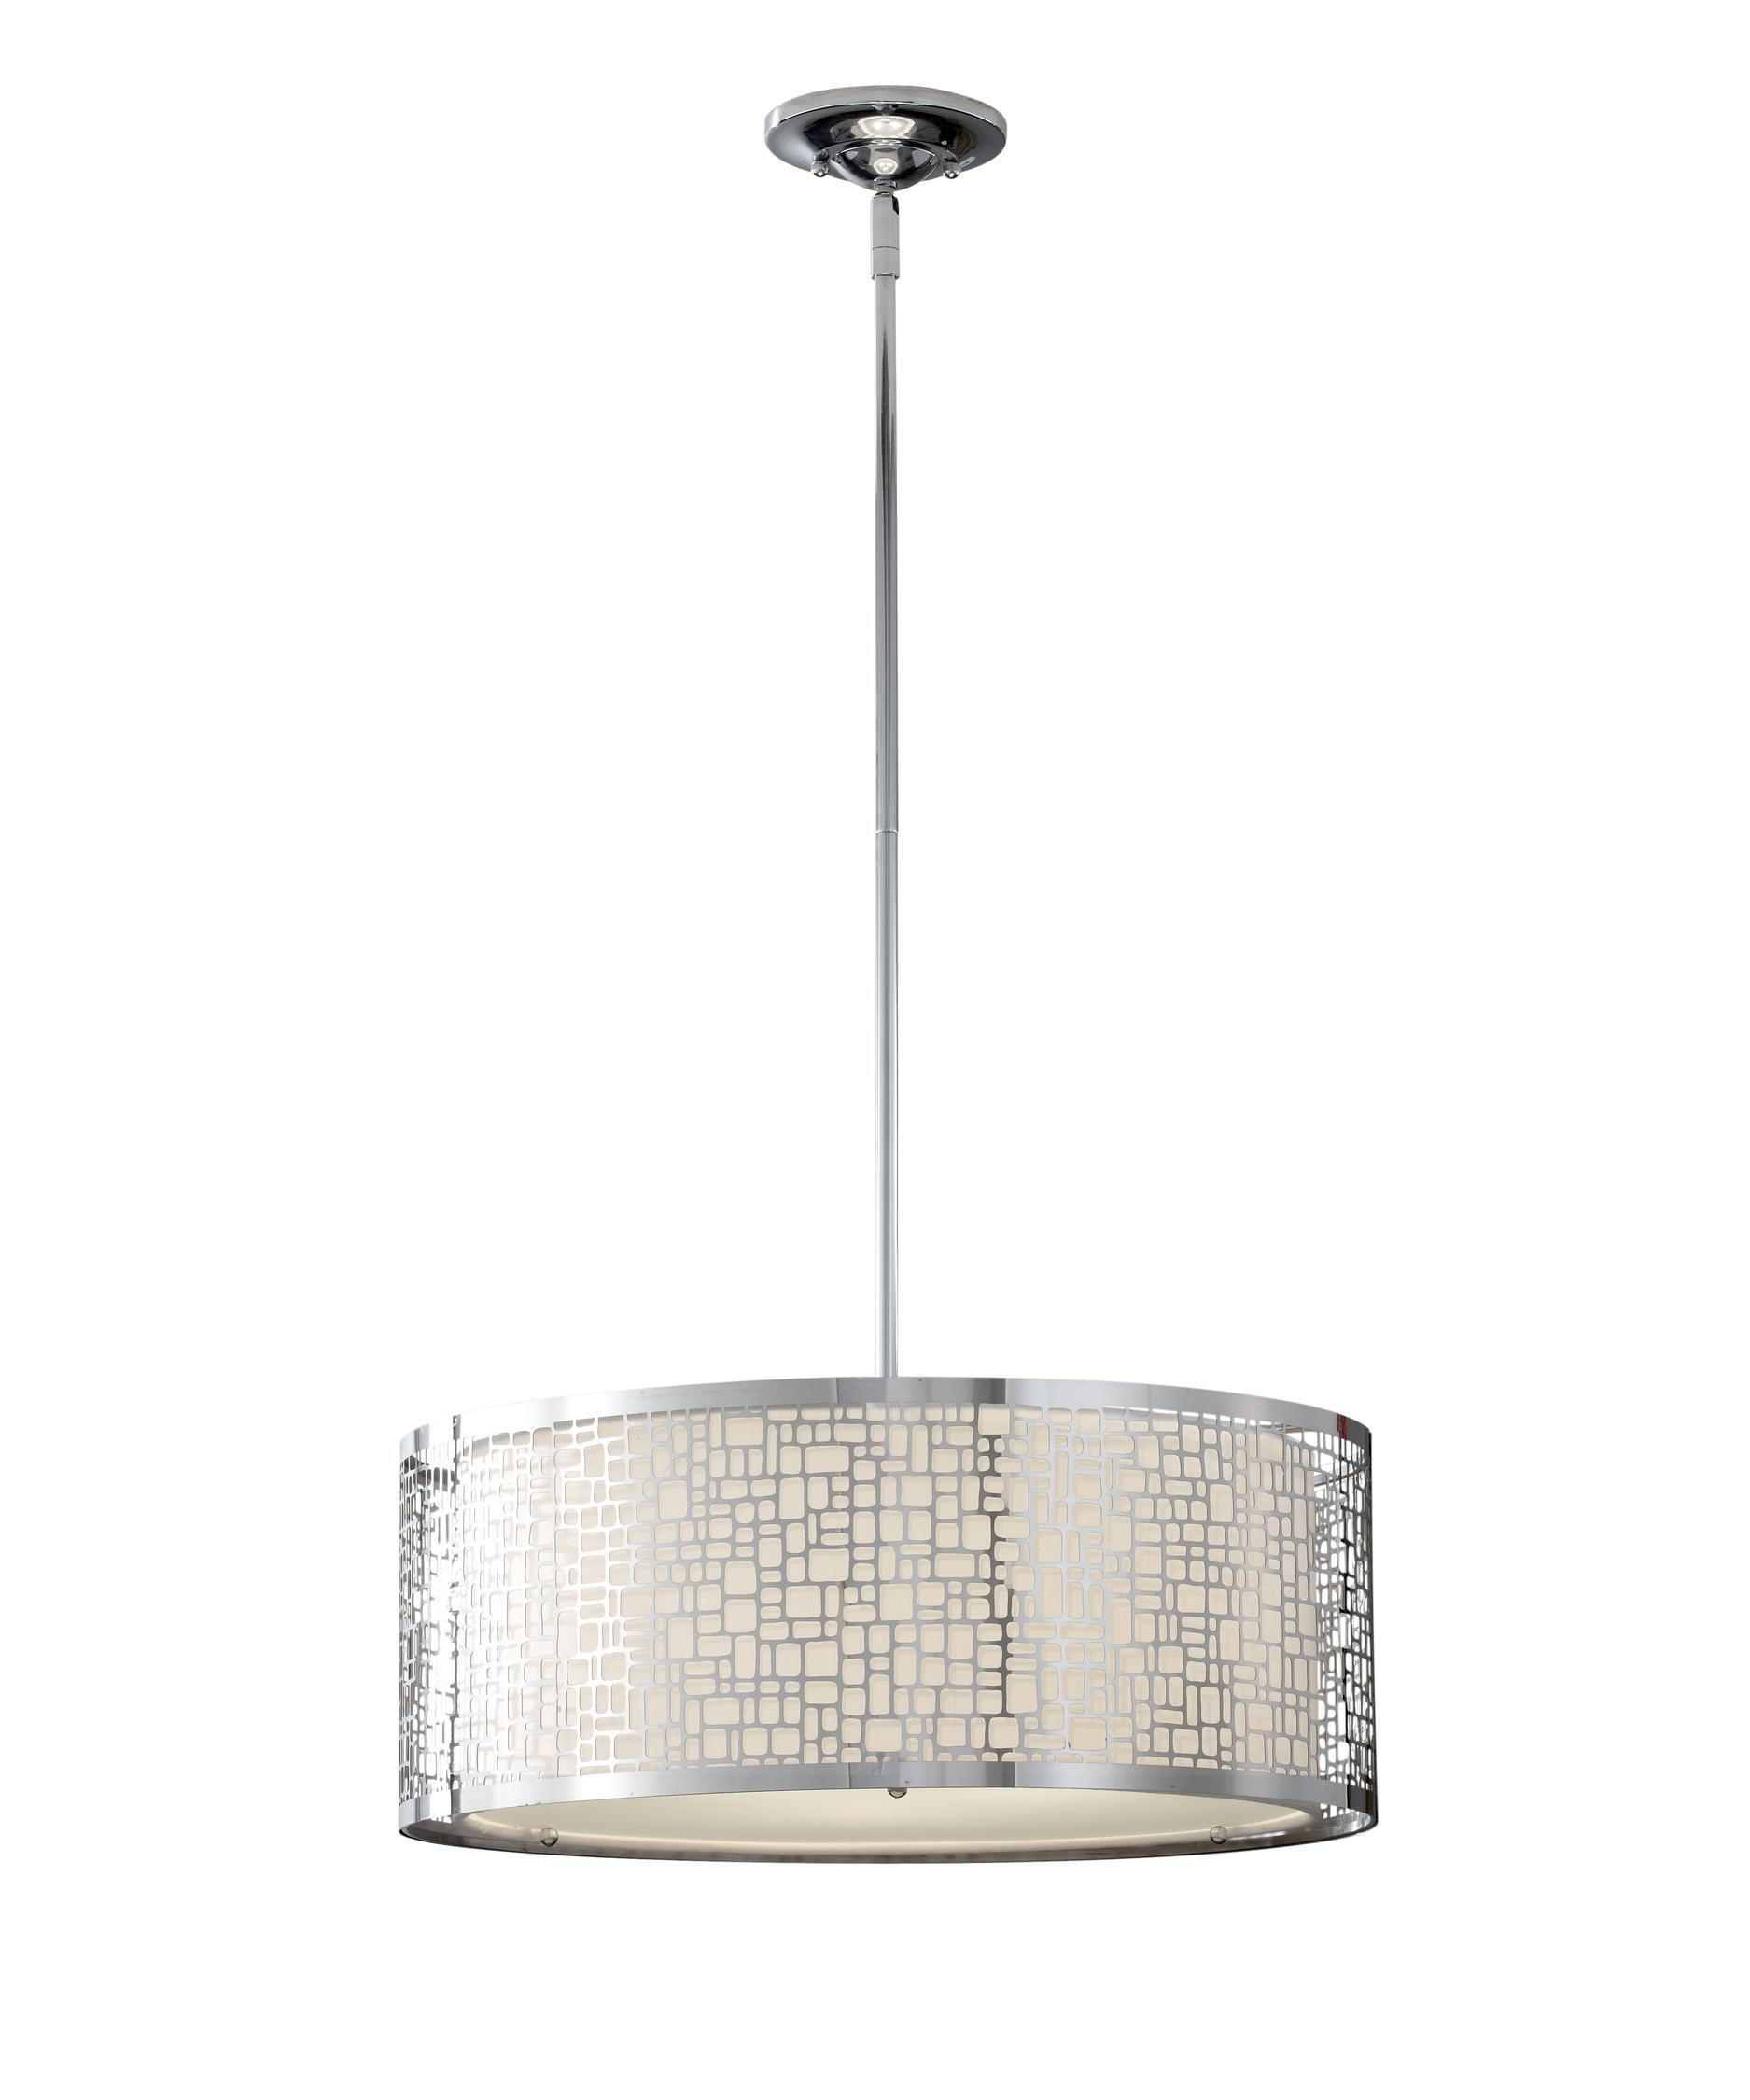 Murray Feiss F2638 3 Joplin 20 Inch Large Pendant